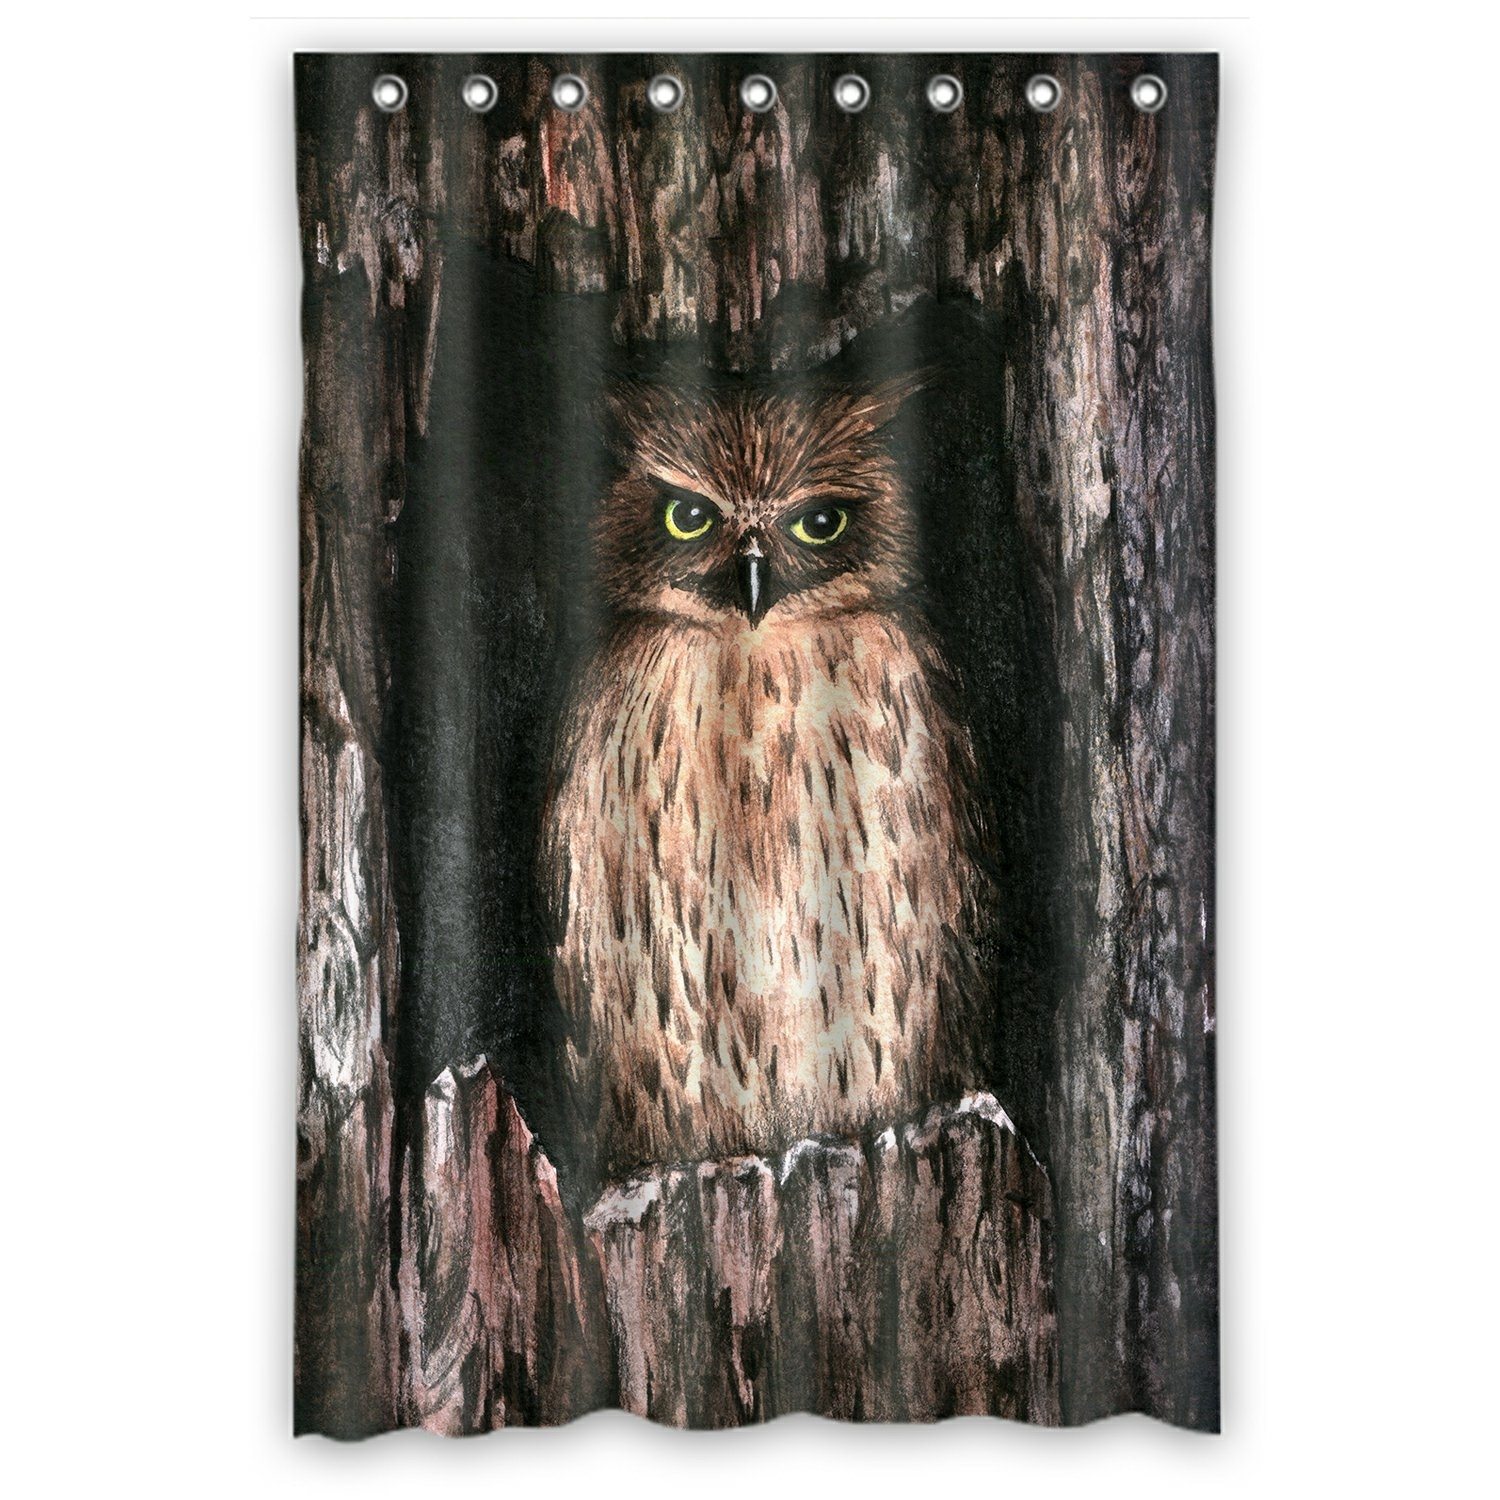 Watercolor Animal Shower Curtain, Cool Owl Shower Curtain 48x72 inch